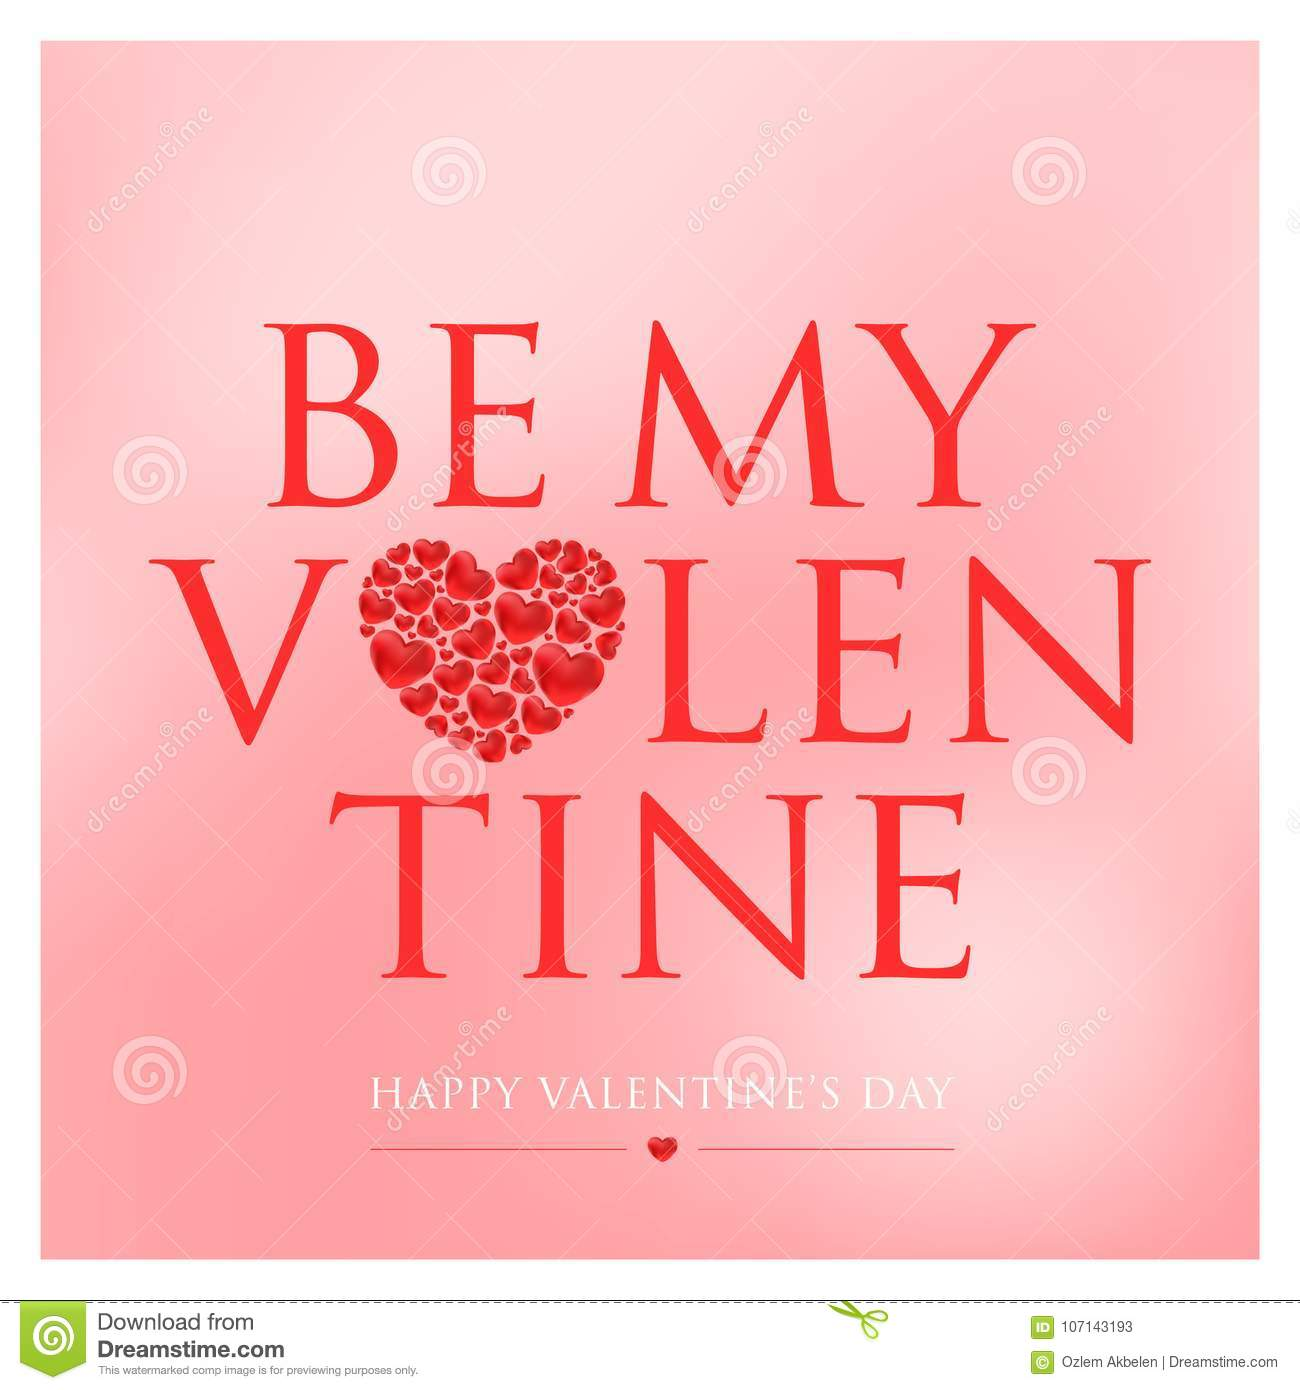 Happy valentines day greeting card vector illustration stock vector happy valentines day greeting card vector illustration m4hsunfo